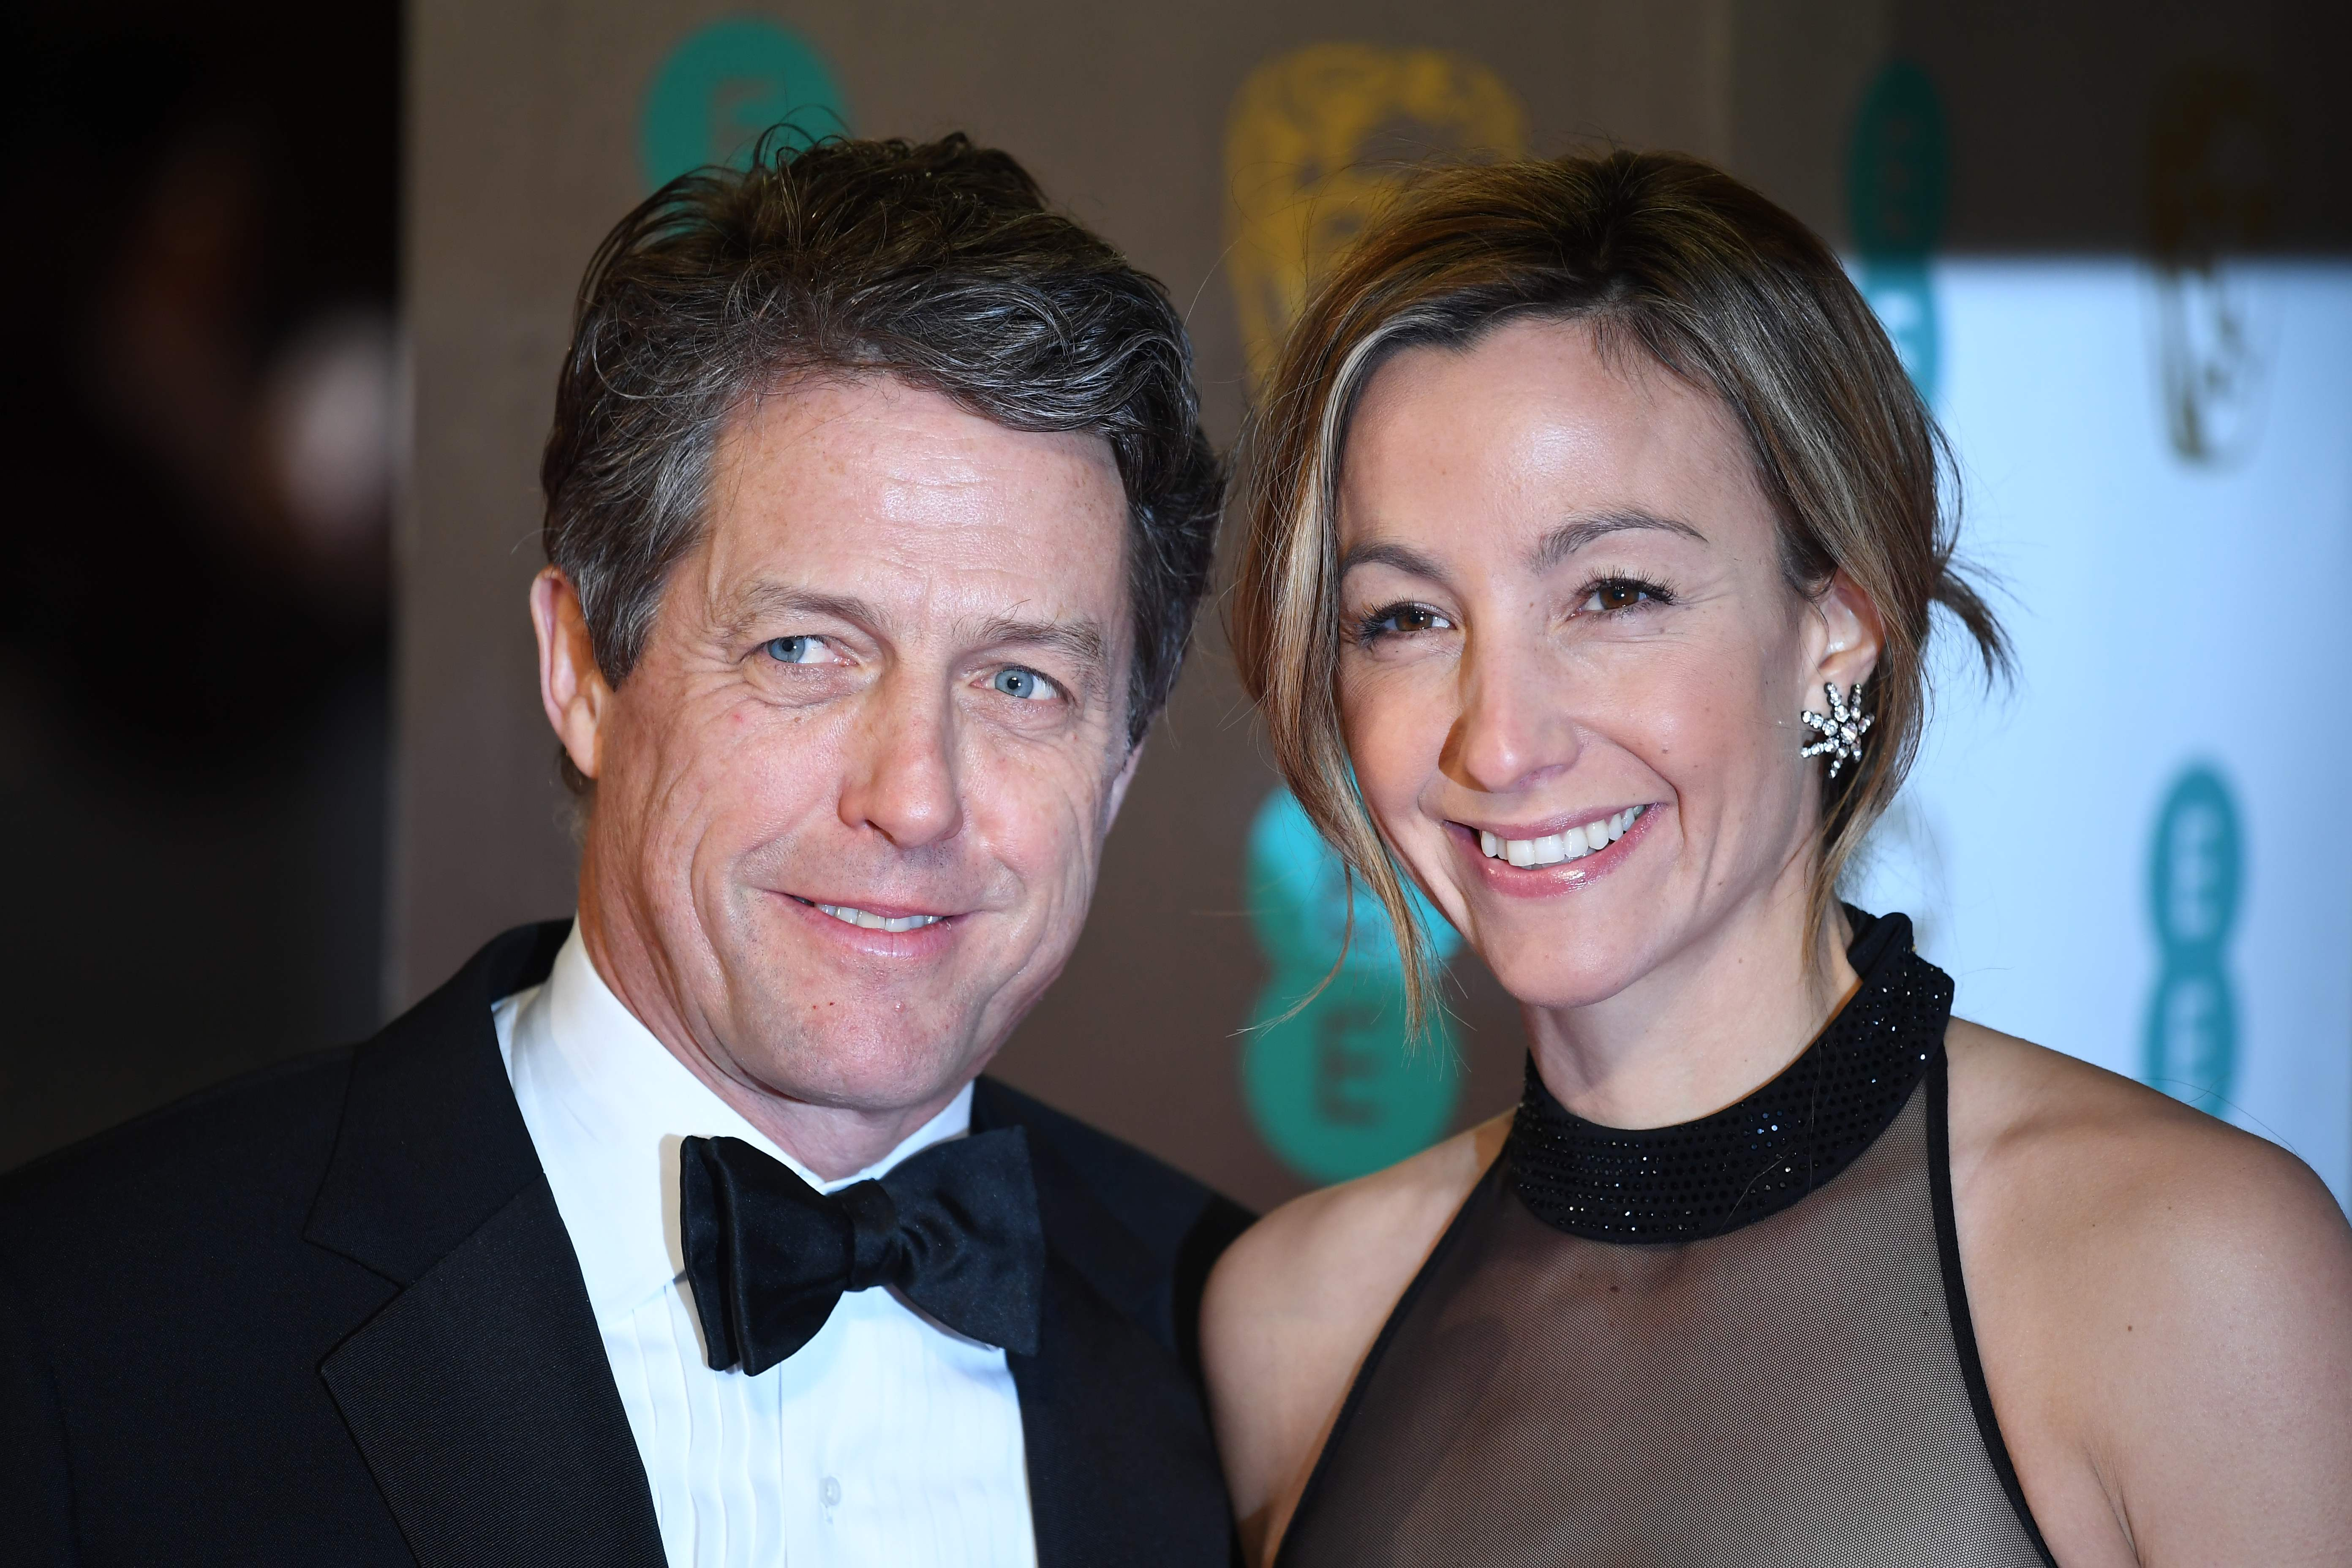 Hugh Grant, 57, marries for the first time to girlfriend Anna Eberstein, reports say